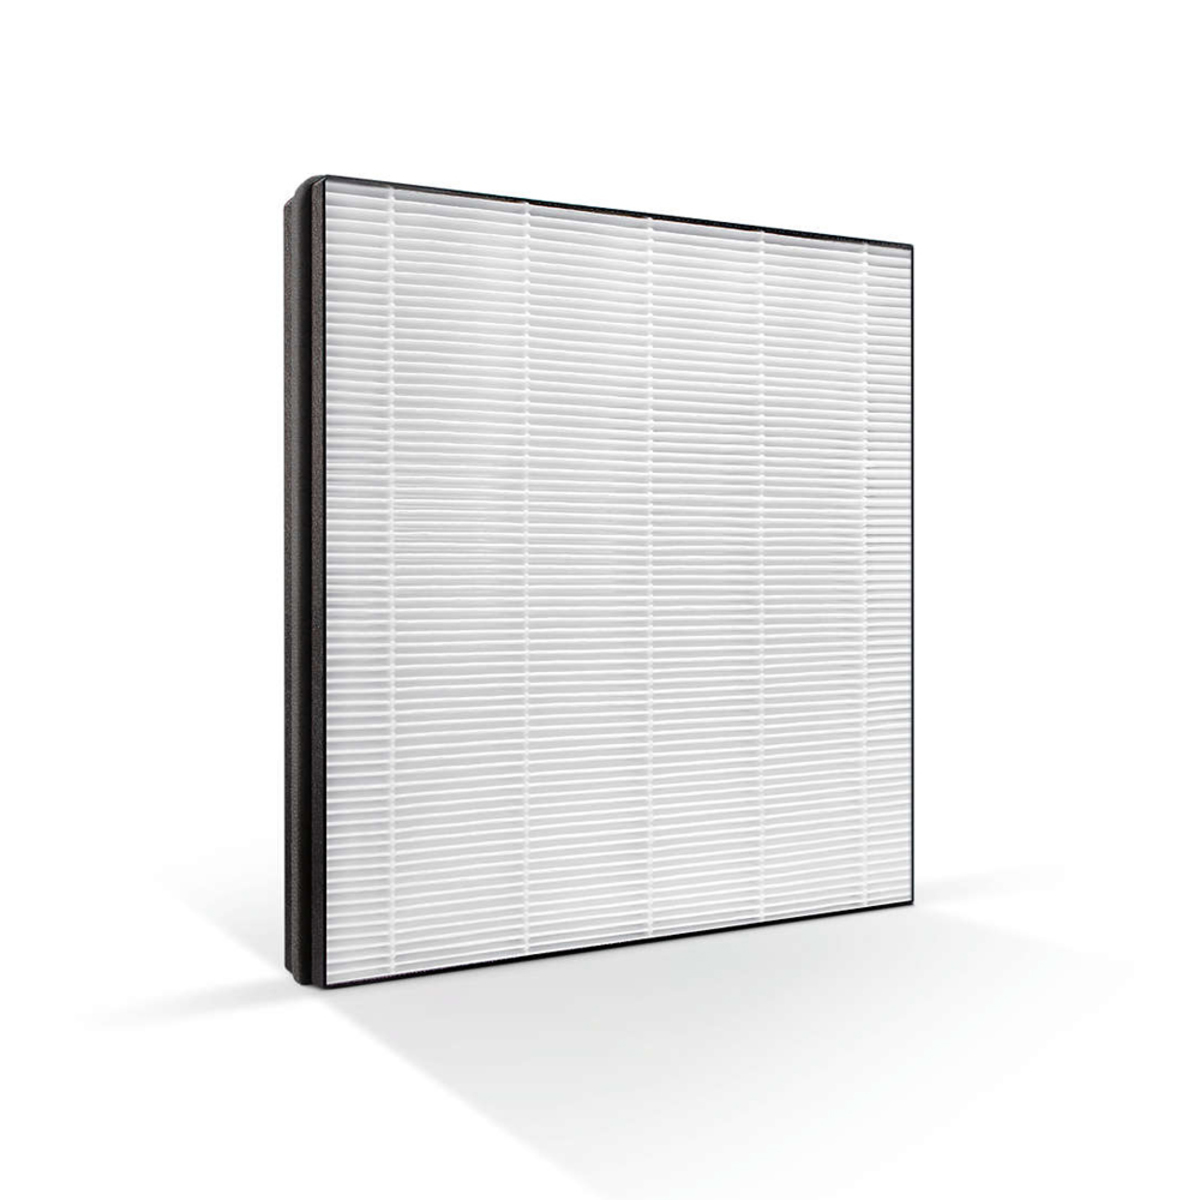 NanoProtect S1 HEPA Filter - FY1119/20